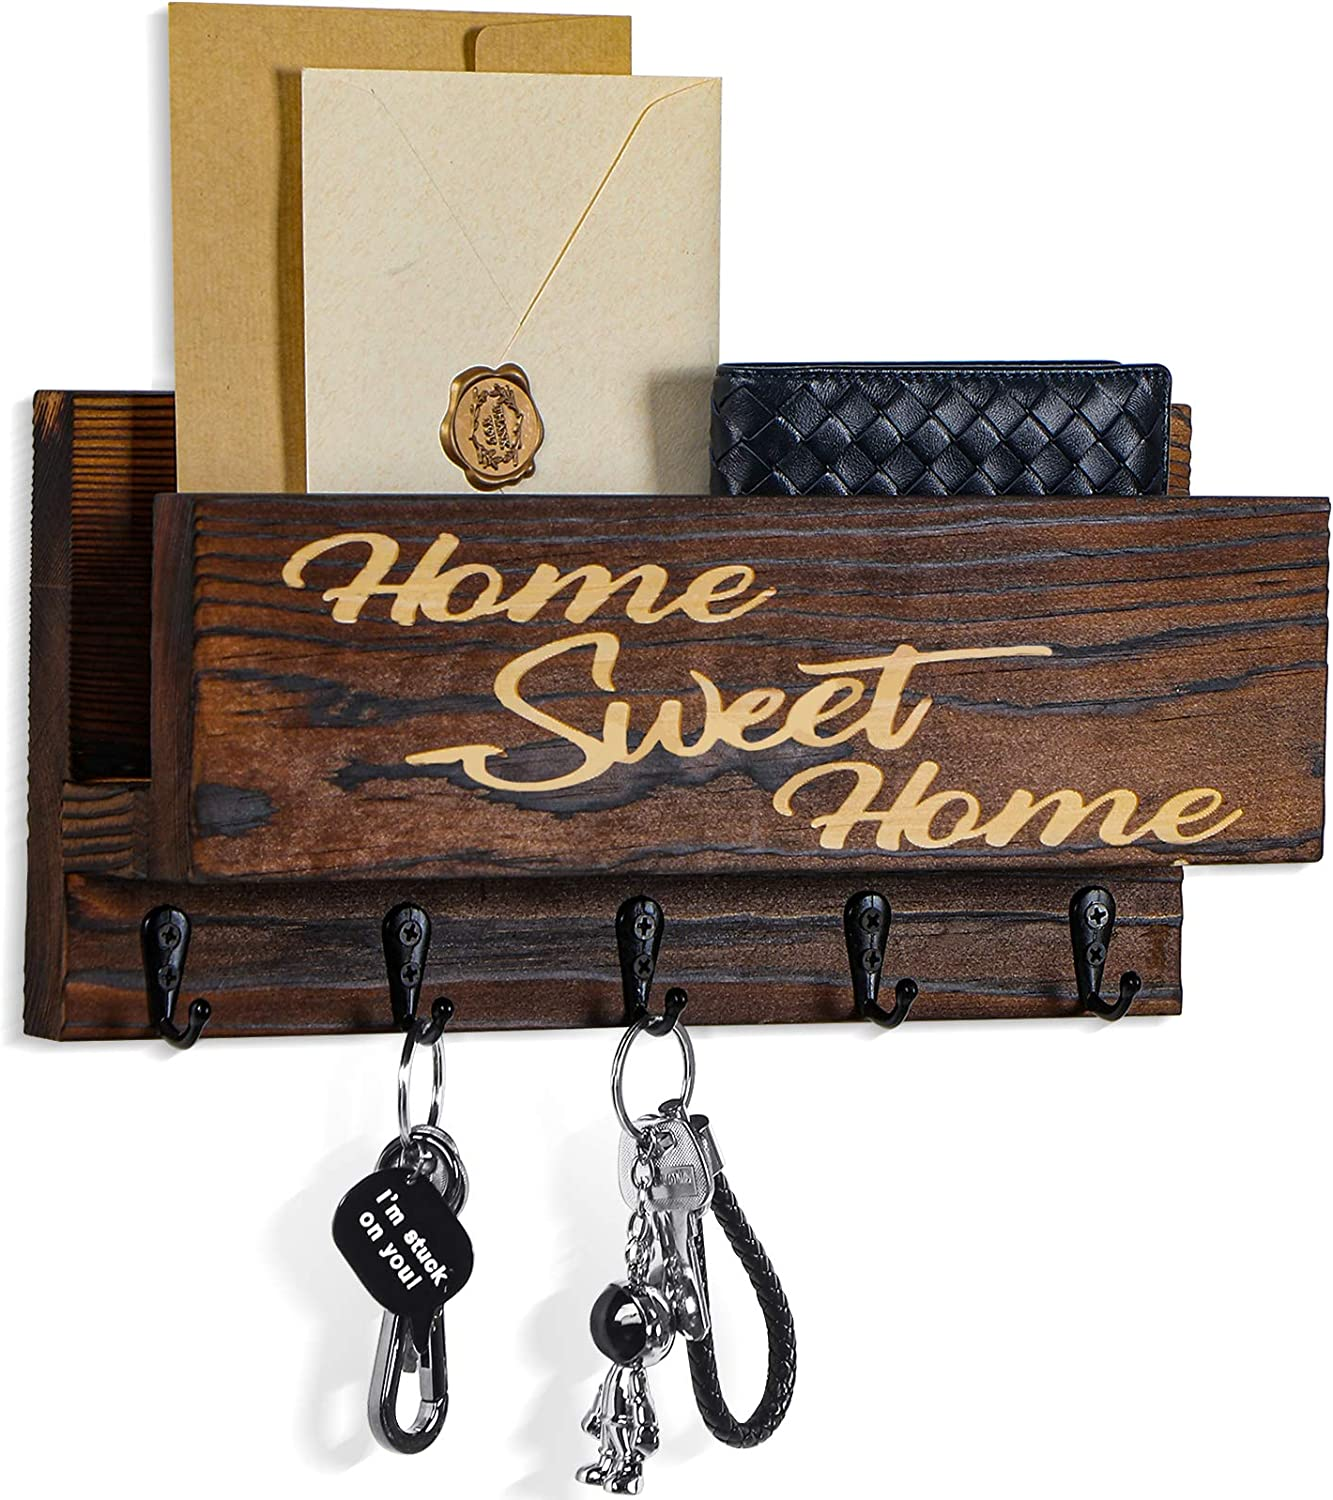 Wooden Key and Mail Holder for Wall Decorative, Rustic Wall Mounted Entryway Organizer with 5 Key Hooks - Perfect Home Hanging Decor for Office, 100% Pine Wood, 11.8